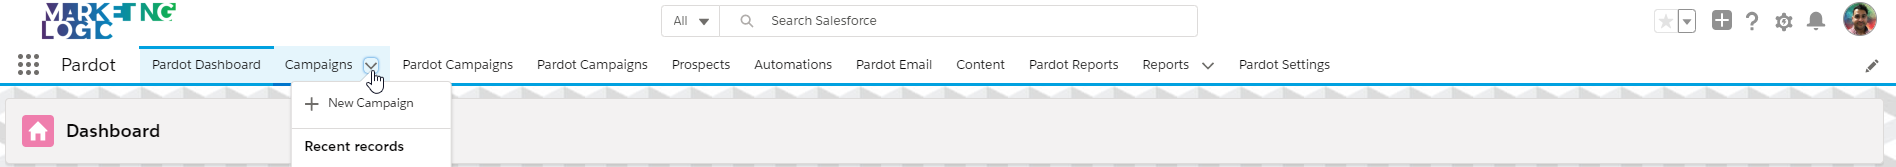 Build a Static List in Pardot